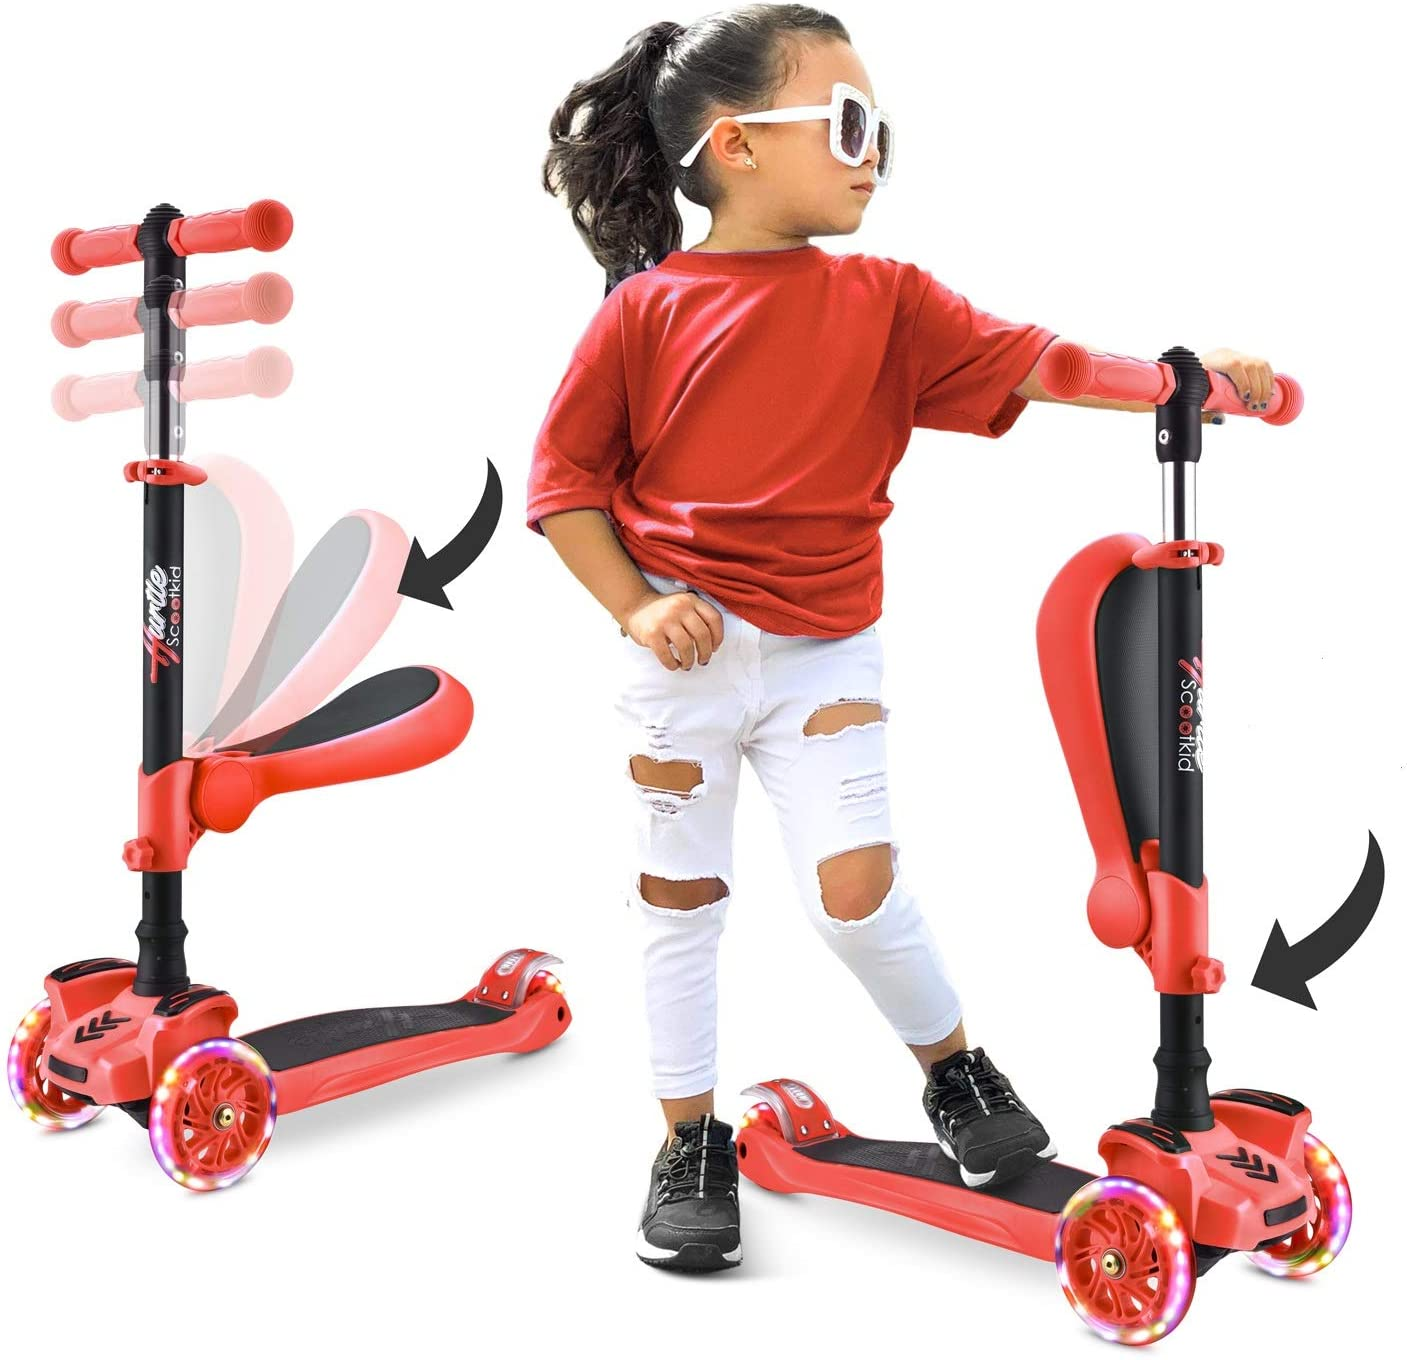 3 Wheeled Scooter for Kids - Stand & Cruise Child/Toddlers Toy Folding Kick Scooters w/Adjustable Height, Anti-Slip Deck, Flashing Wheel Lights, for Boys/Girls 2-12 Year Old - Hurtle HURFS56